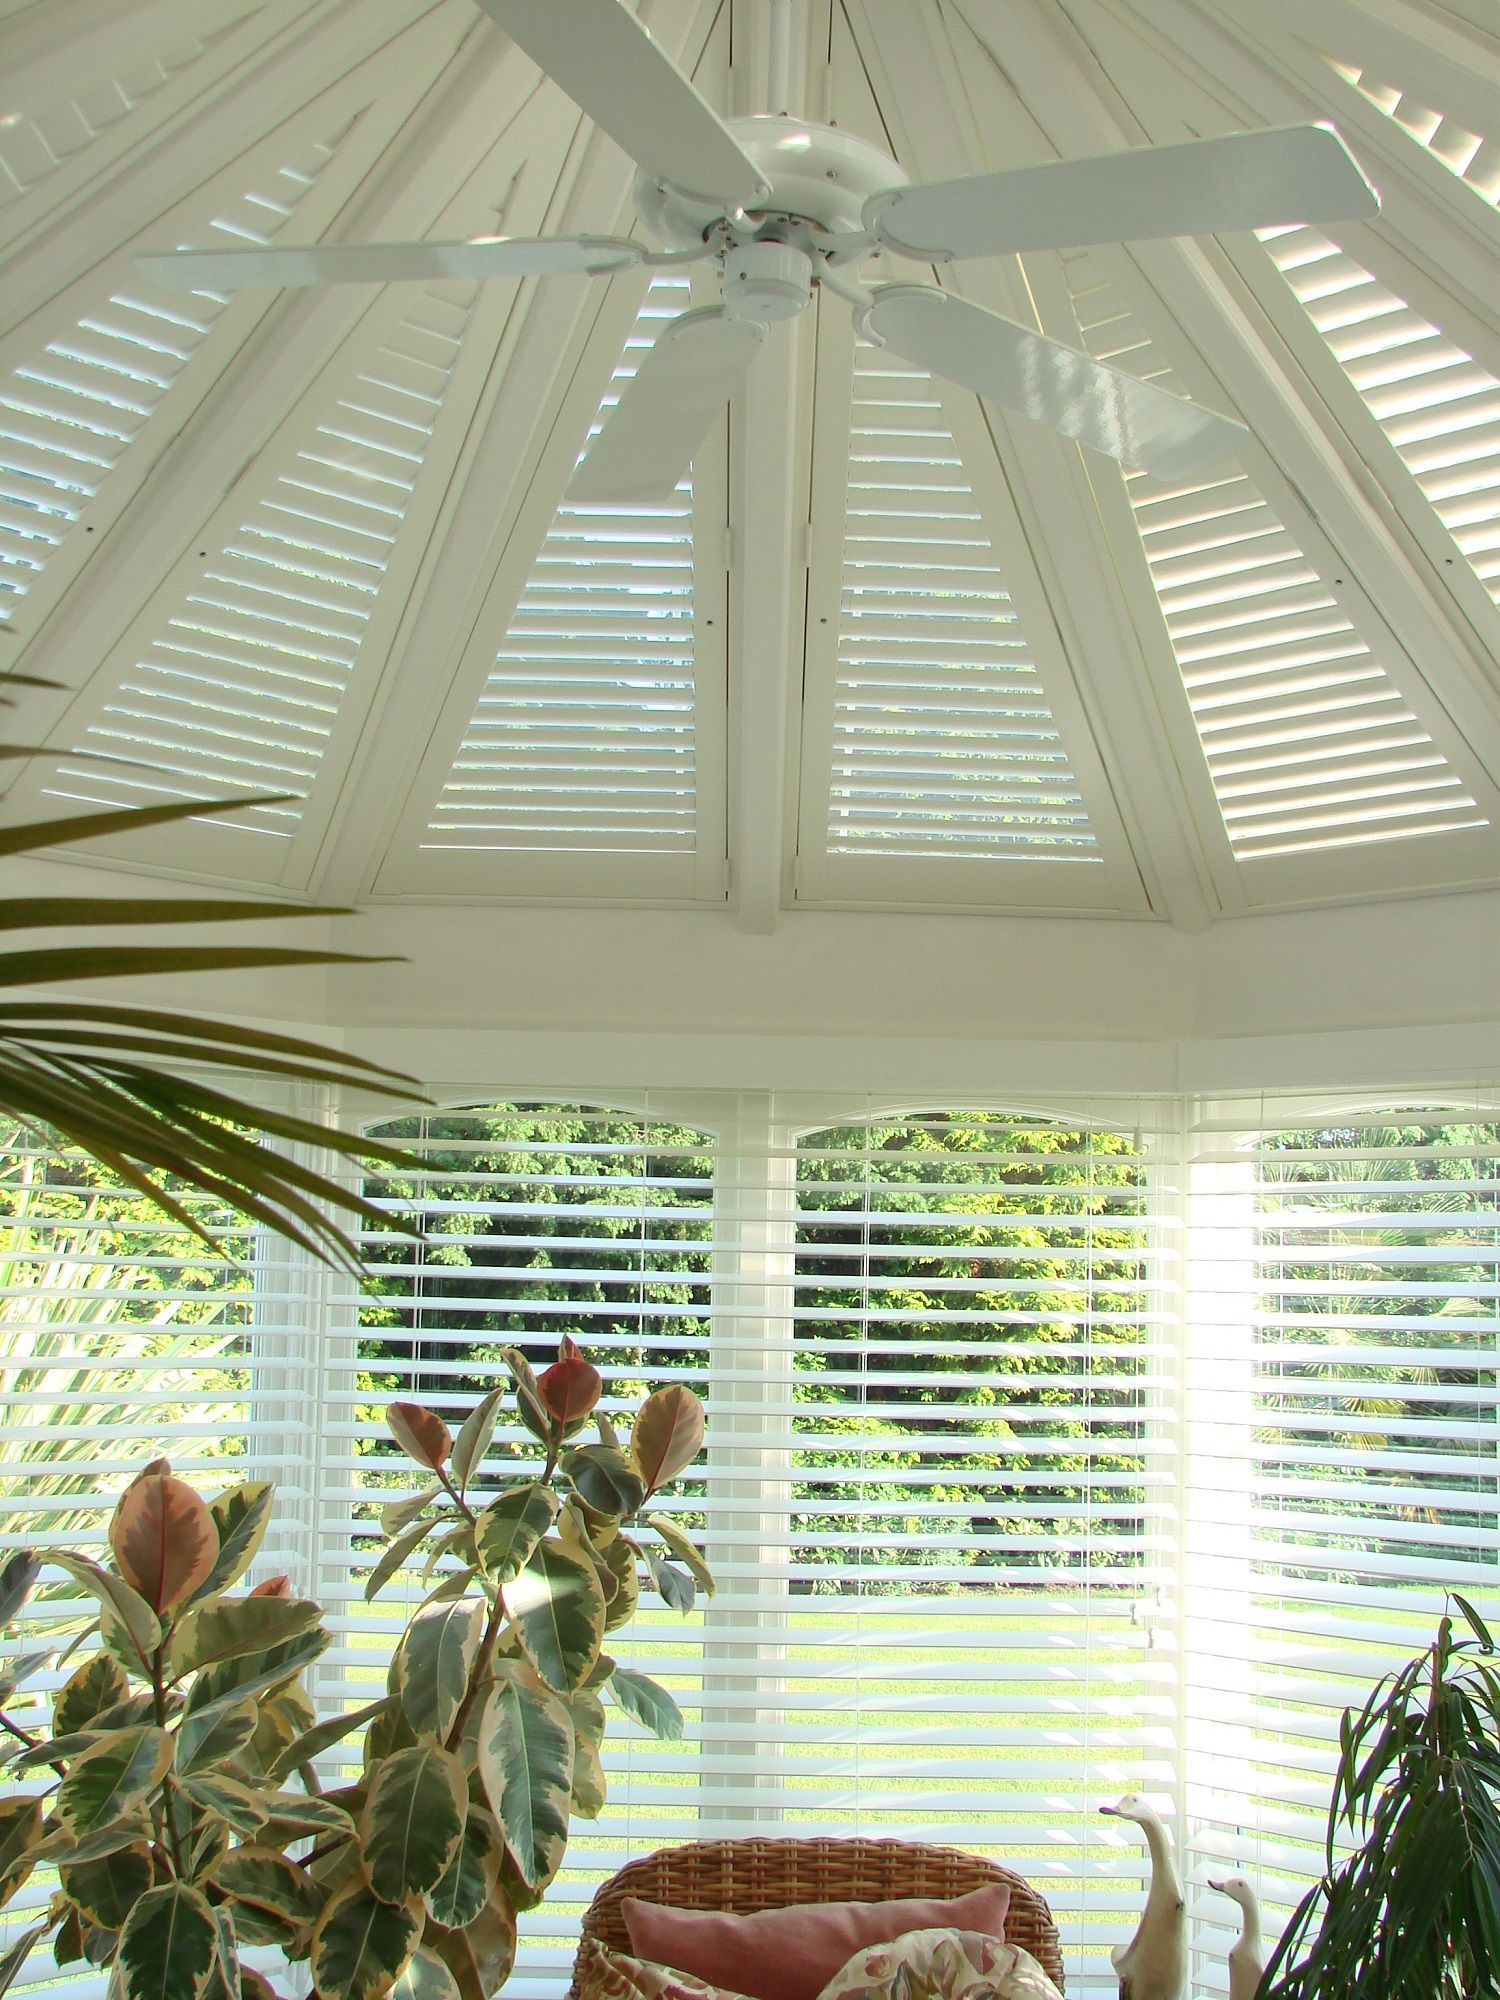 Apollo Conservatory Roof Blinds In 2020 Conservatory Roof Blinds Conservatory Roof Conservatory Decor